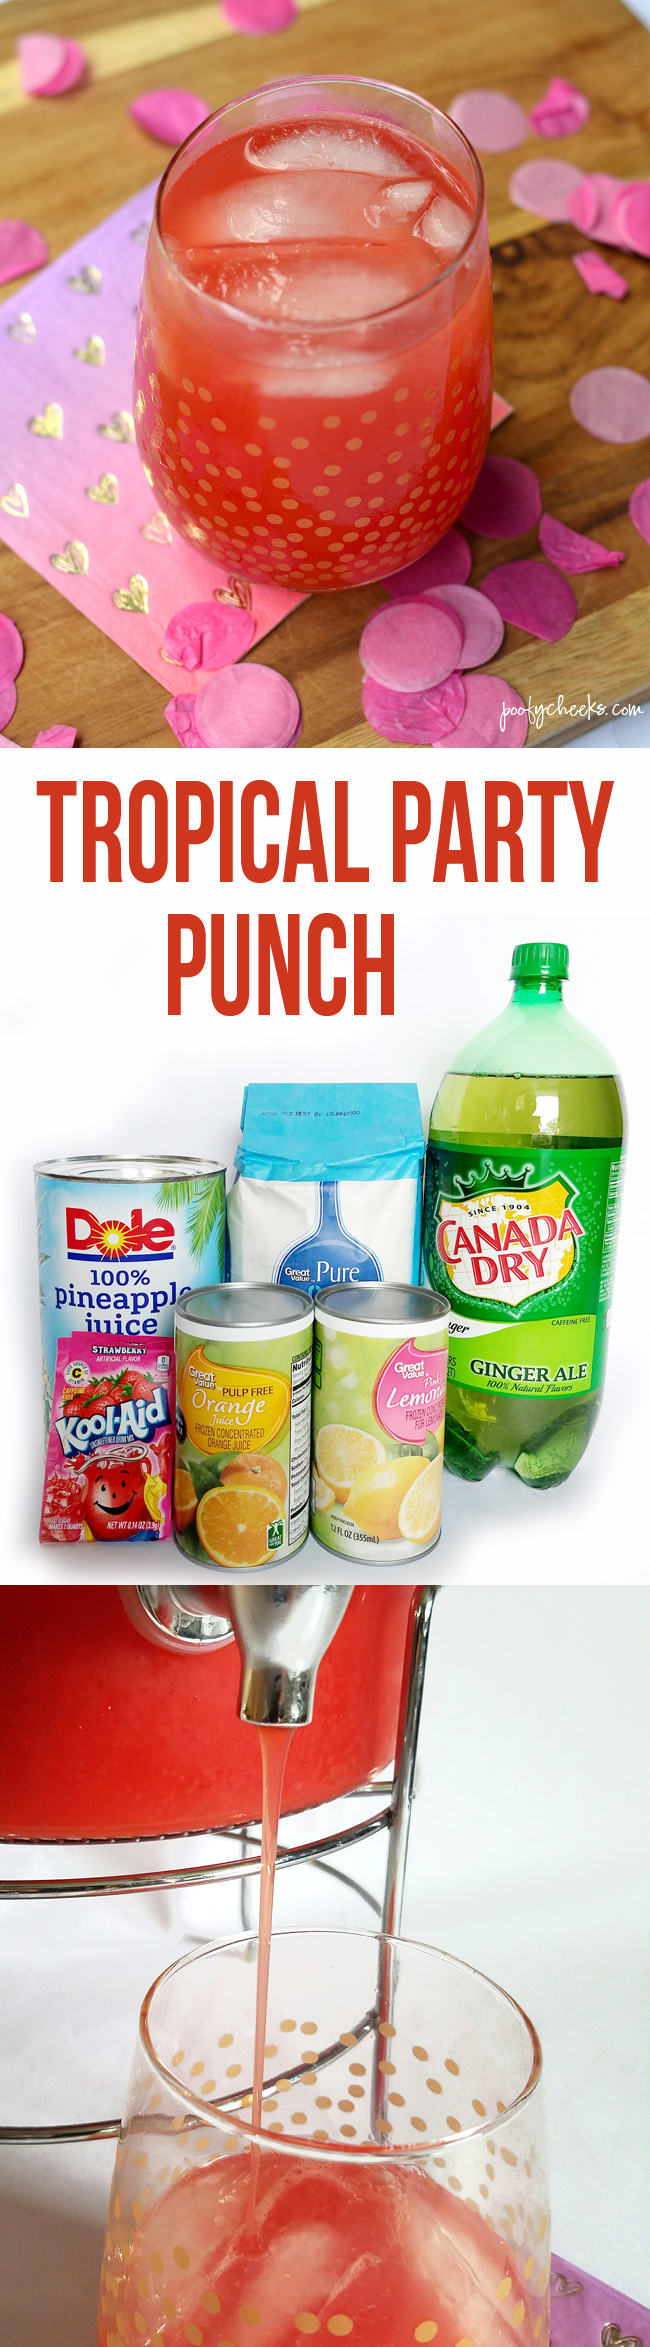 Sex toy party punch recipes